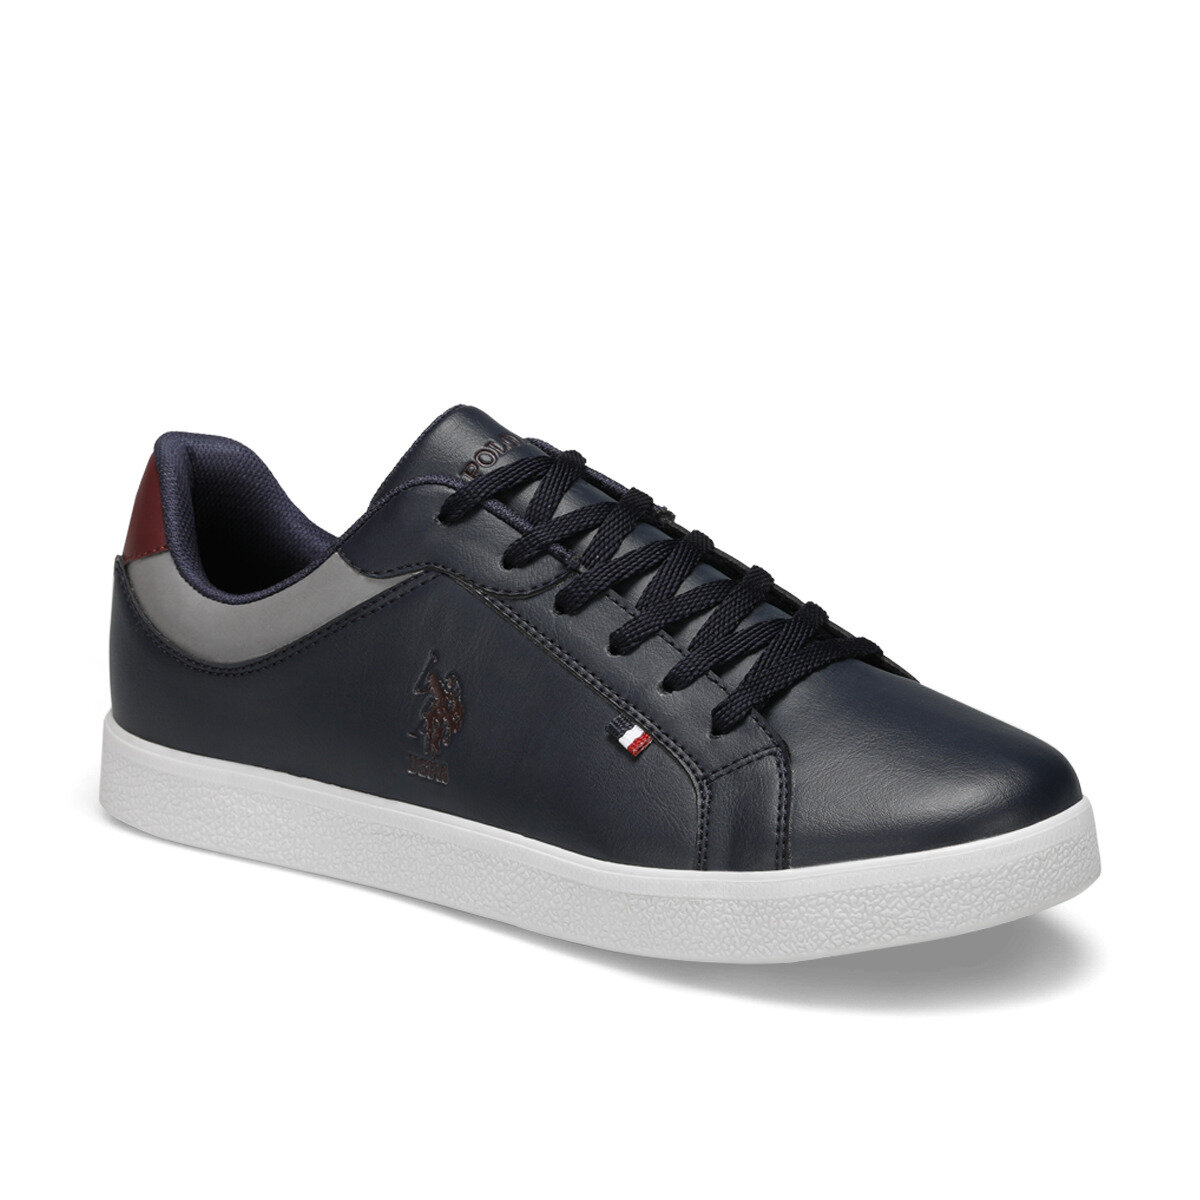 FLO Men's Sneaker Shoes 2020 New Casual Shoes Men Flat Shoes Lace-up Low Top Sneakers Tenis Masculino U.S. POLO ASSN. ARNOLD Navy Blue